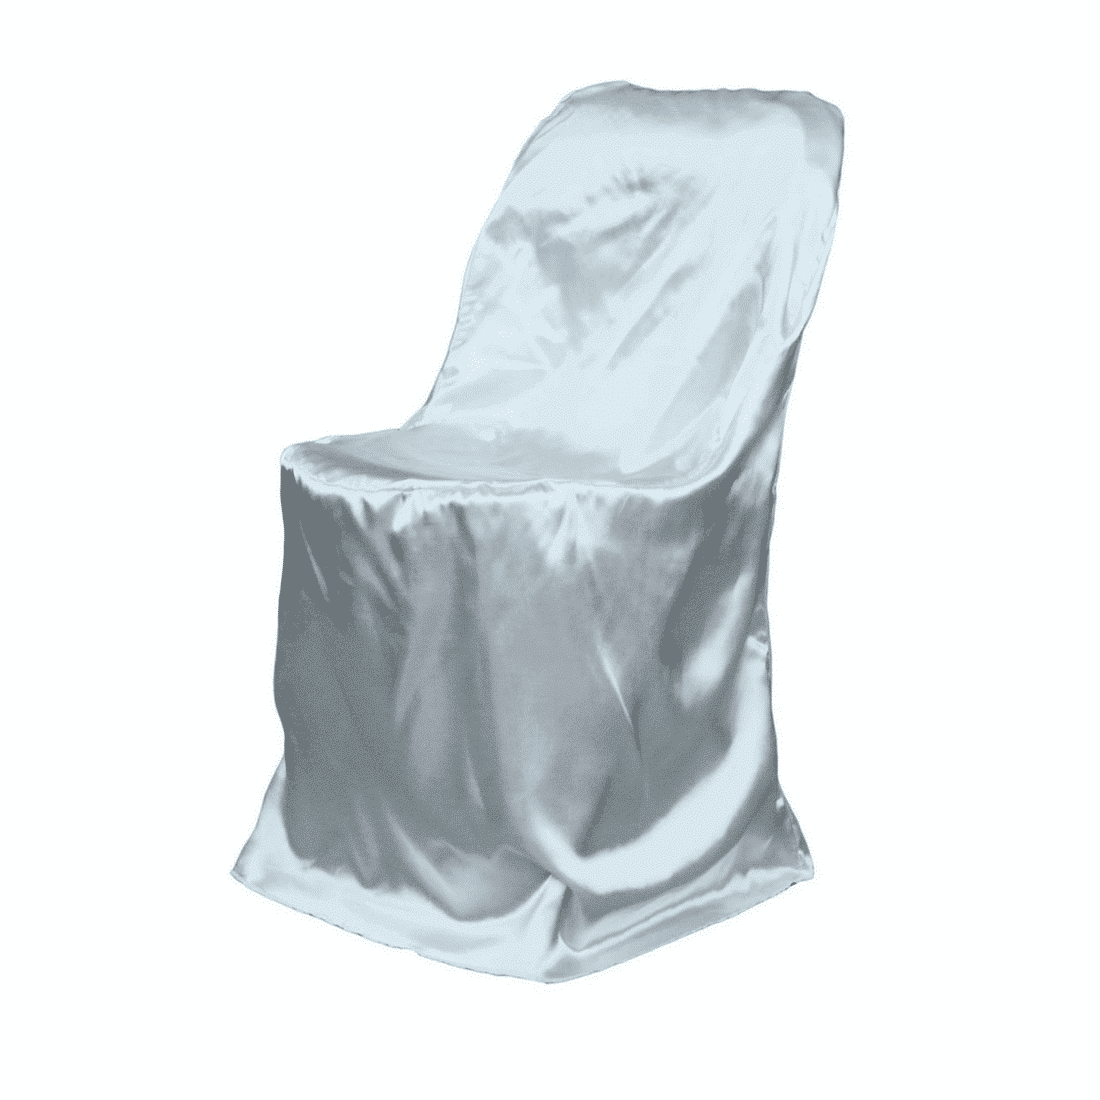 chair covers and sashes hampshire bedroom recliner grey satin folding cover luxe event rental